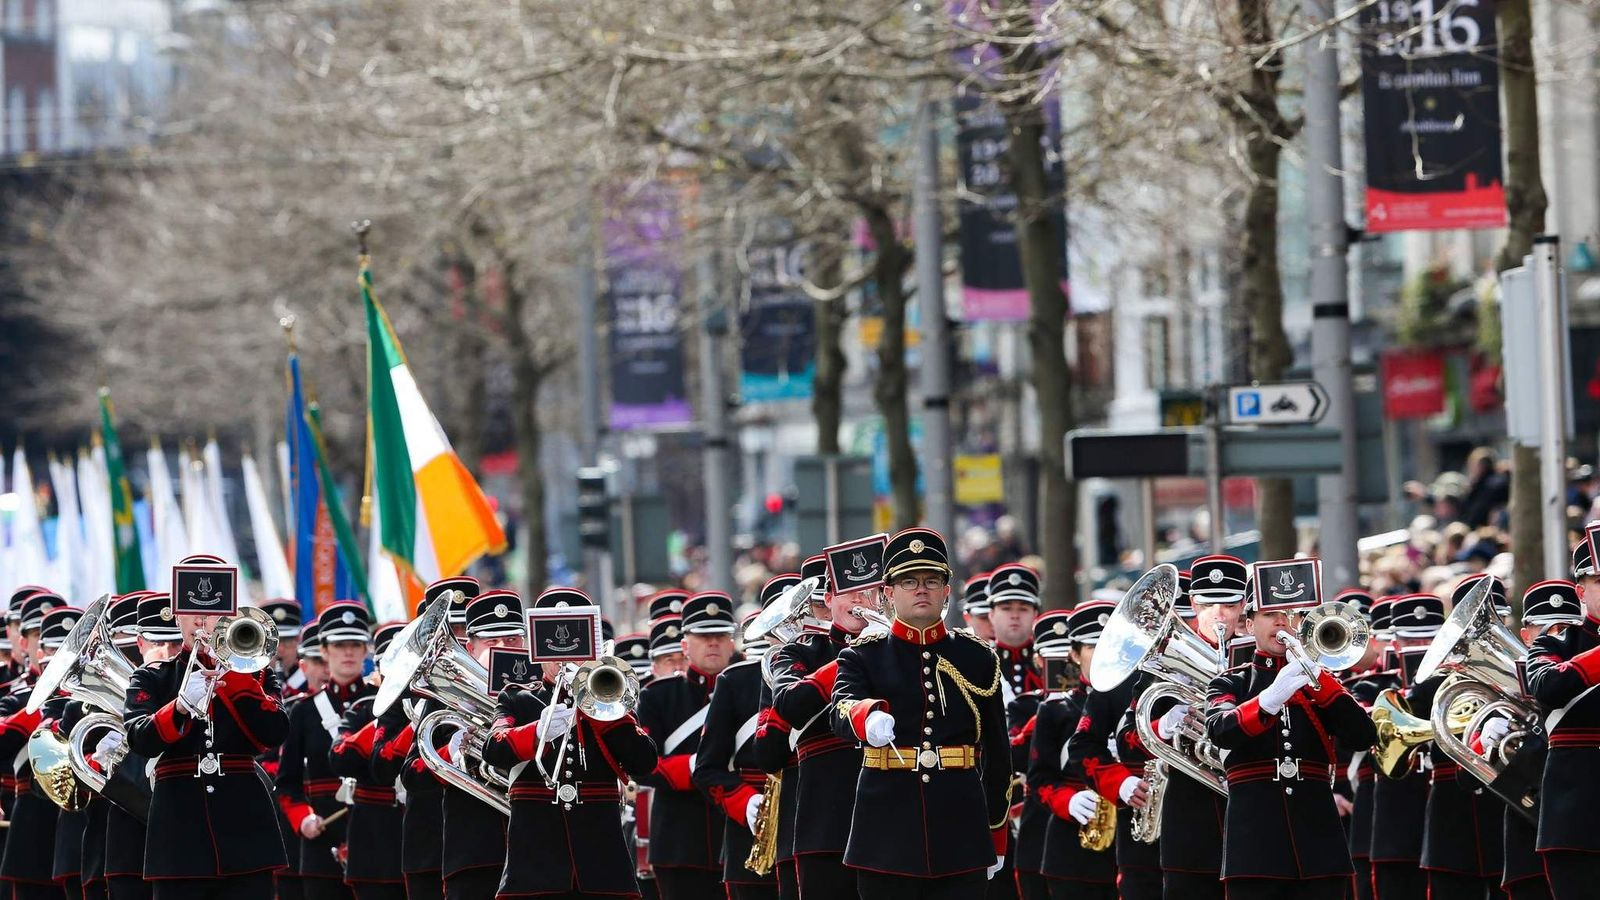 Dublin Commemorates The Easter Rising Centenary